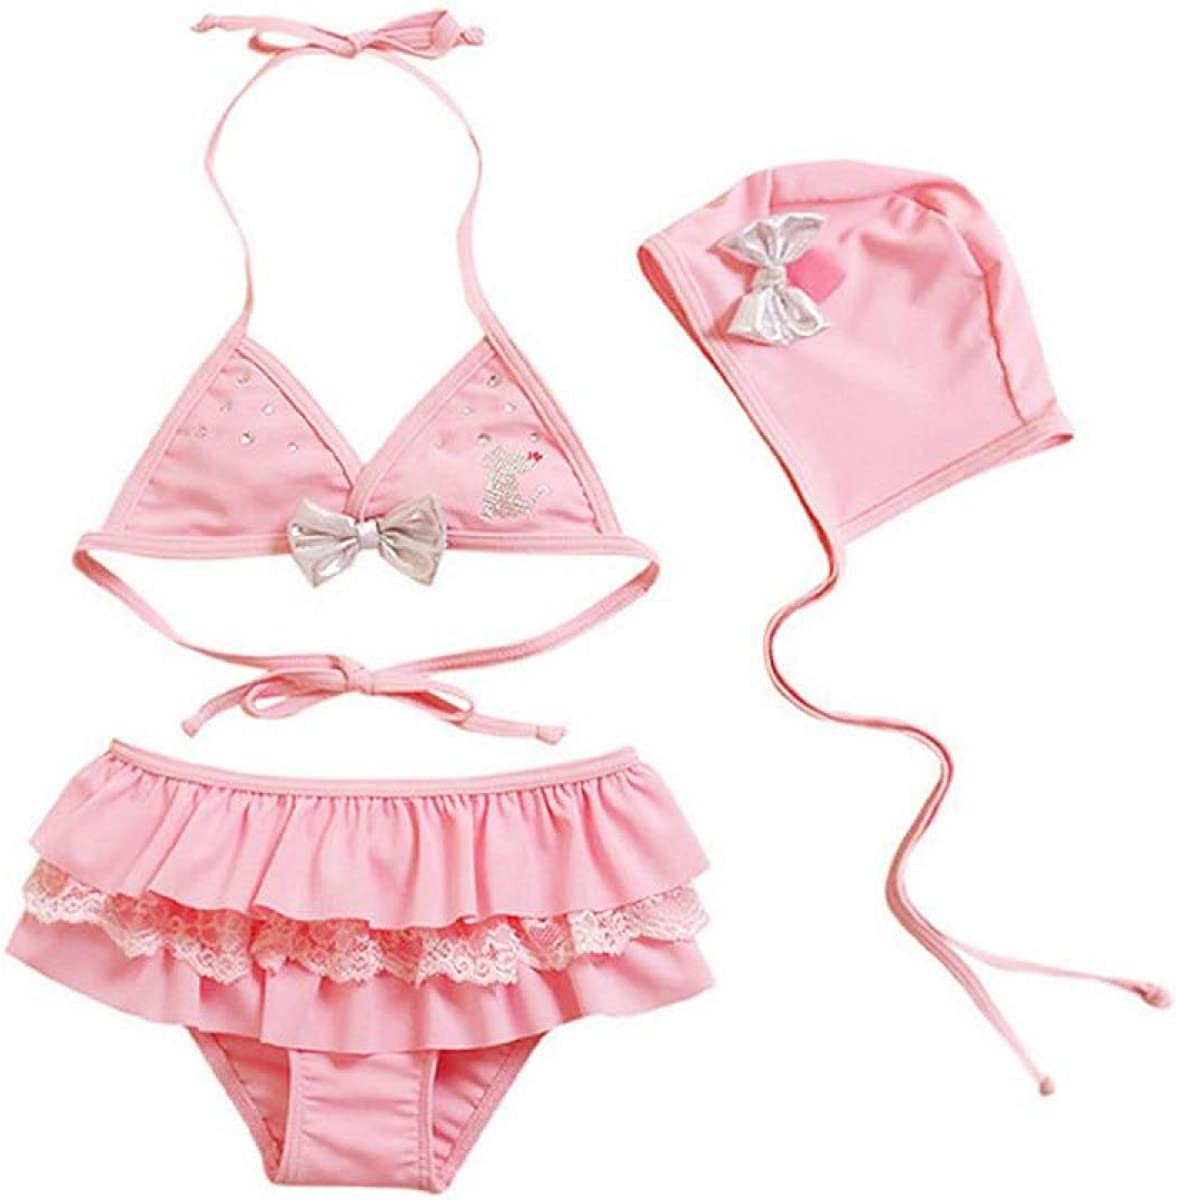 MIKI SHOP Swimwear Kids Summer Two Pieces Skirted Swimsuits Girl Bikinis Set Bikini Beach Wear Swimsuit for Girls